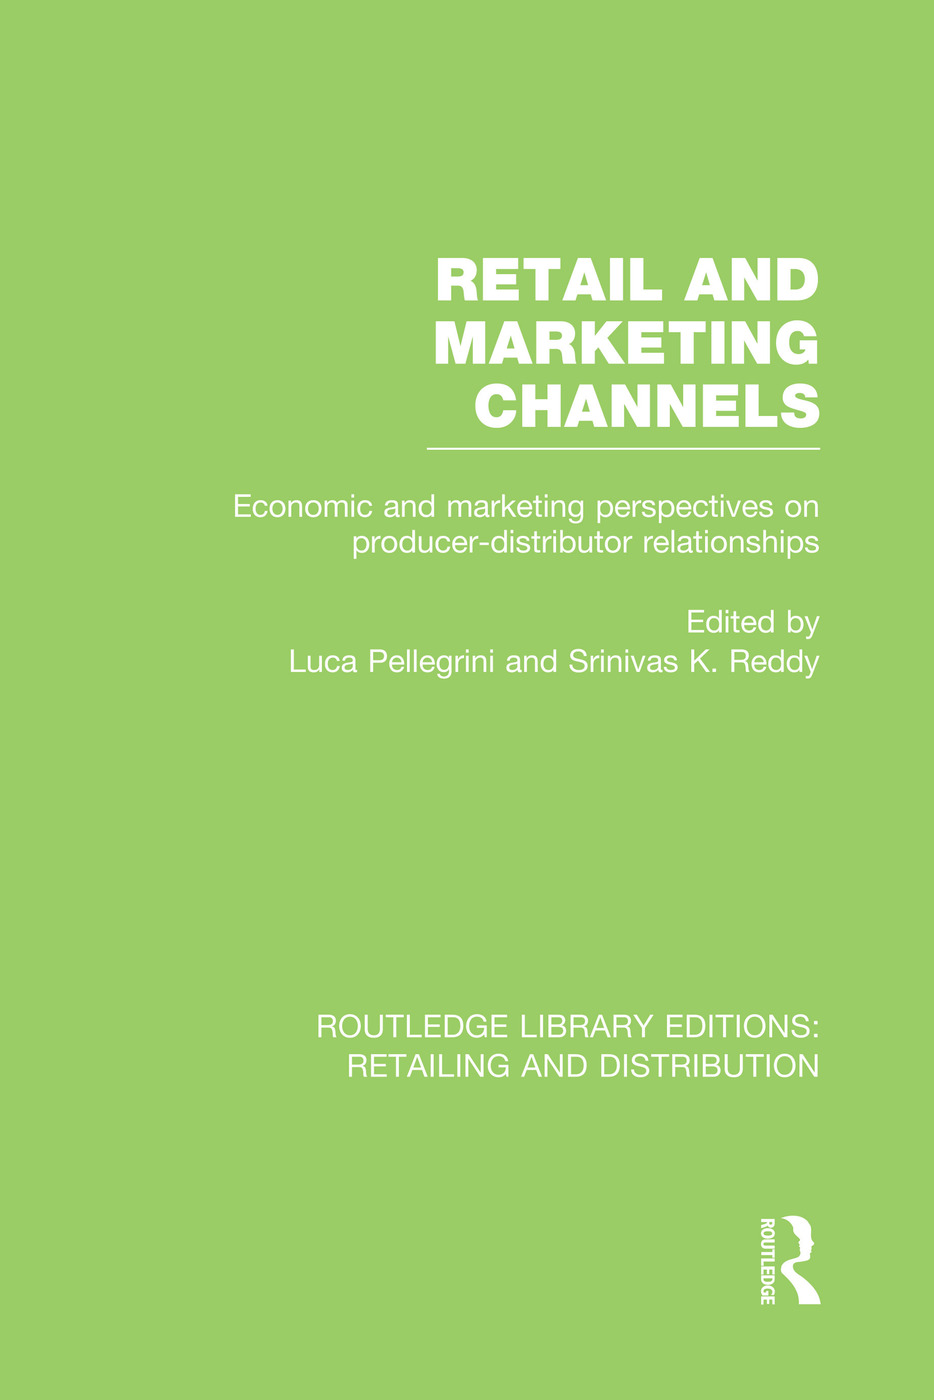 Retail and Marketing Channels (RLE Retailing and Distribution) book cover